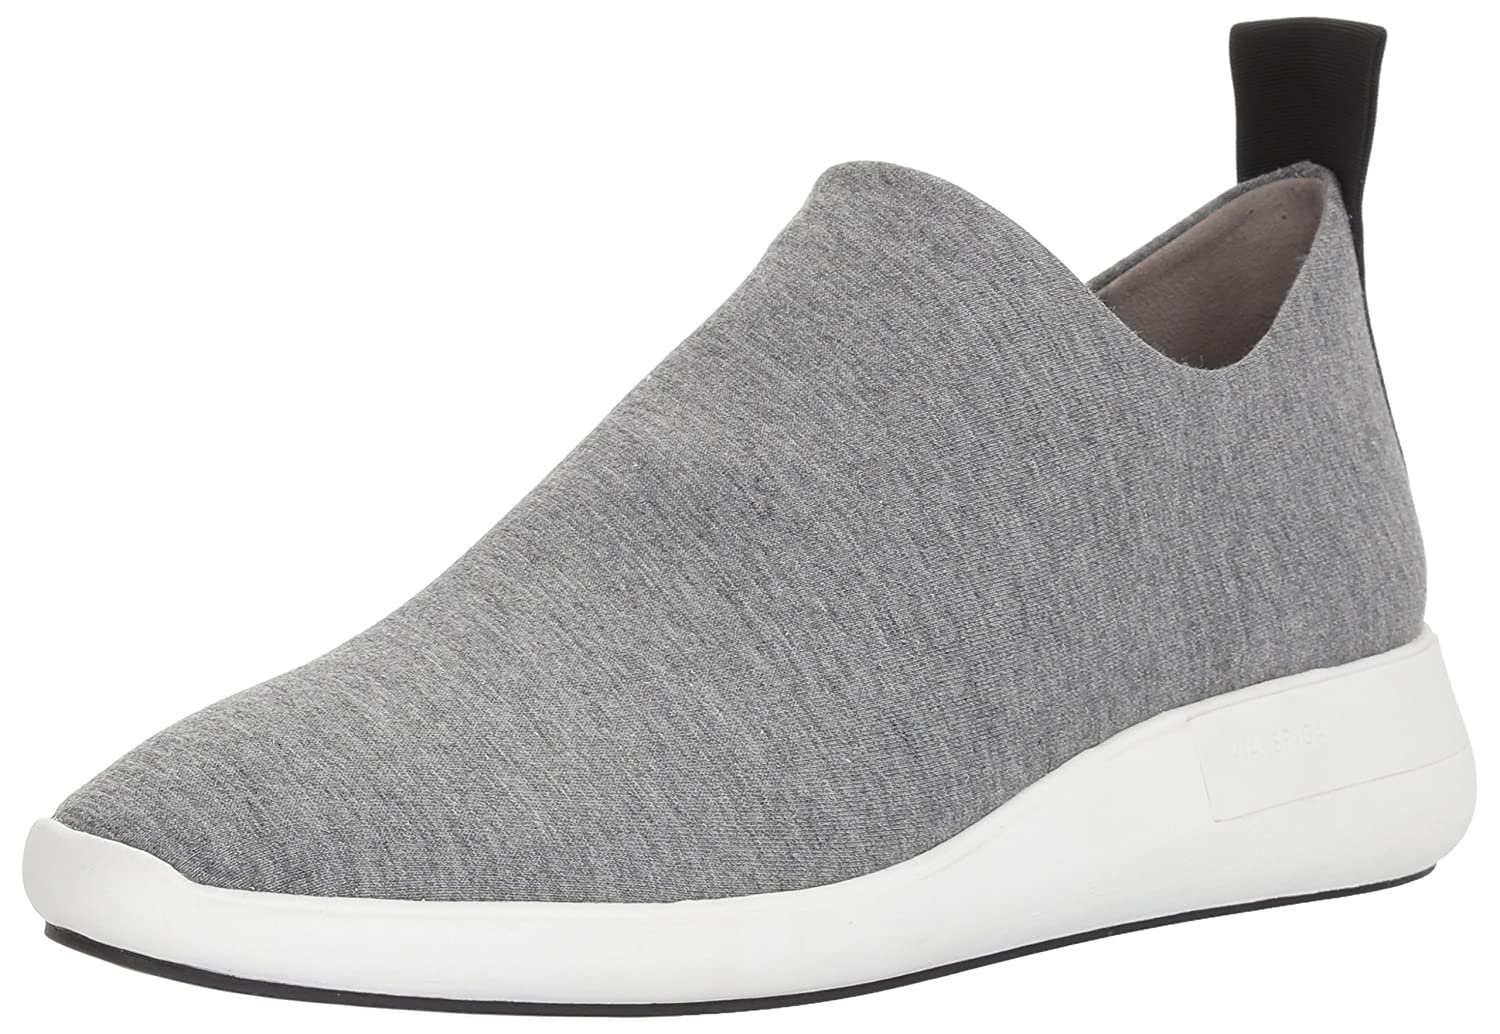 Via Spiga Women's Marlow Slip Sneaker B074F12RR3 9.5 B(M) US|Heather Grey Jersey